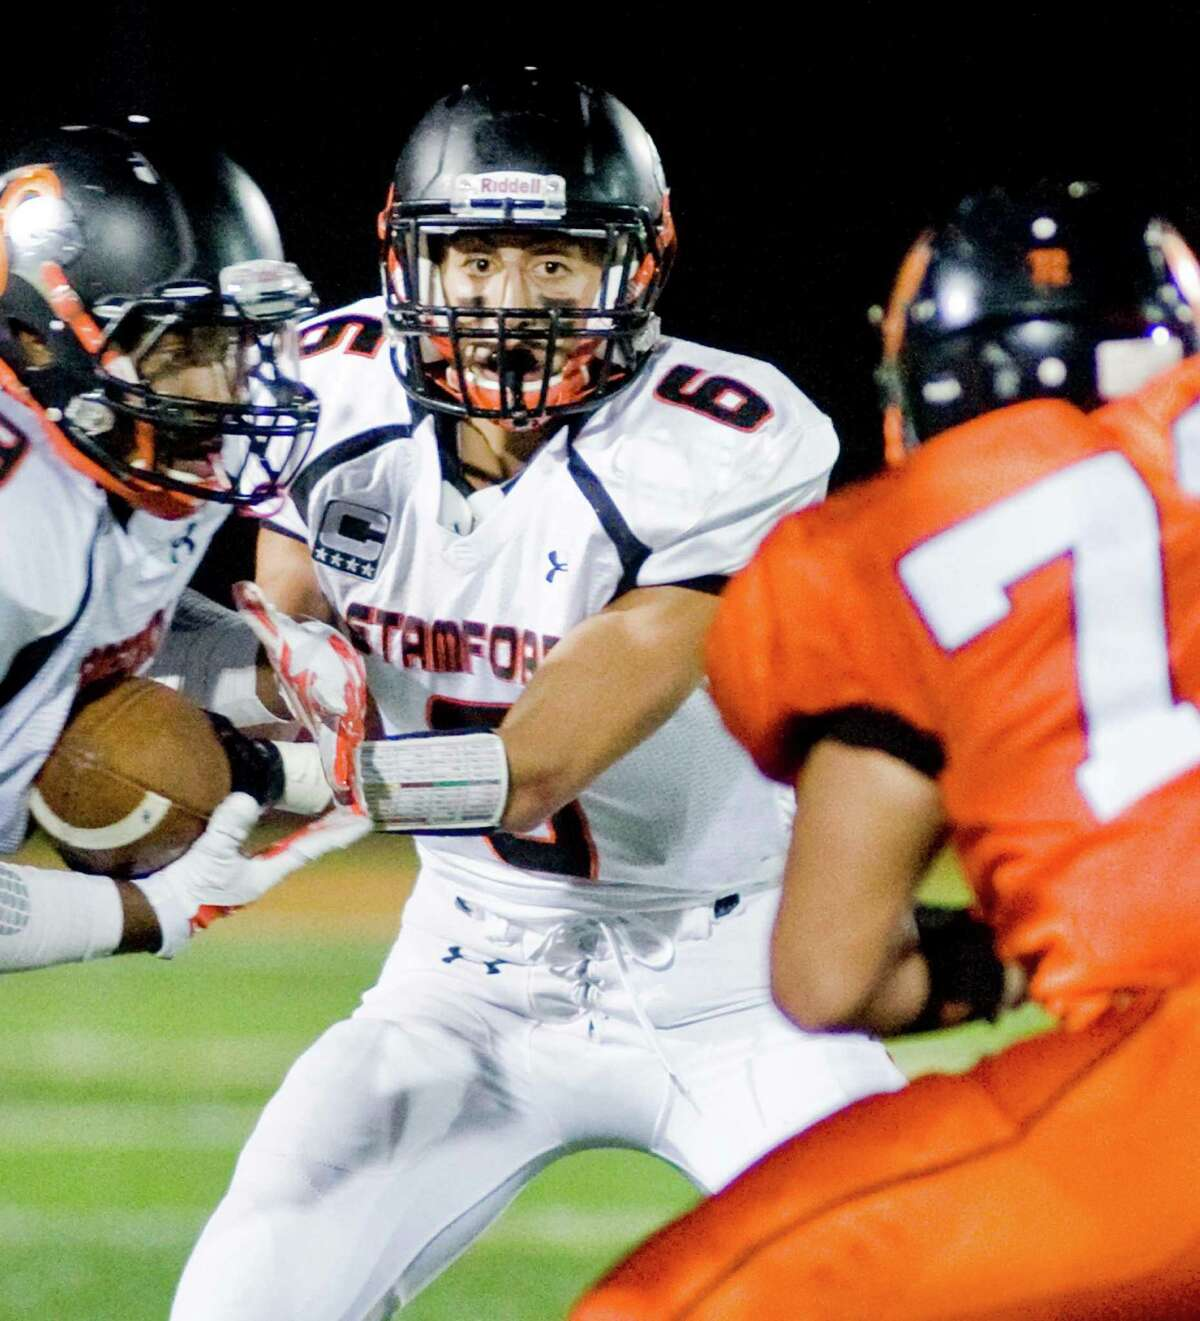 Stamford High School quarterback Tyler Serrichio hands off the ball in a game against Ridgefield High School, played at Ridgefield. Oct. 10, 2014